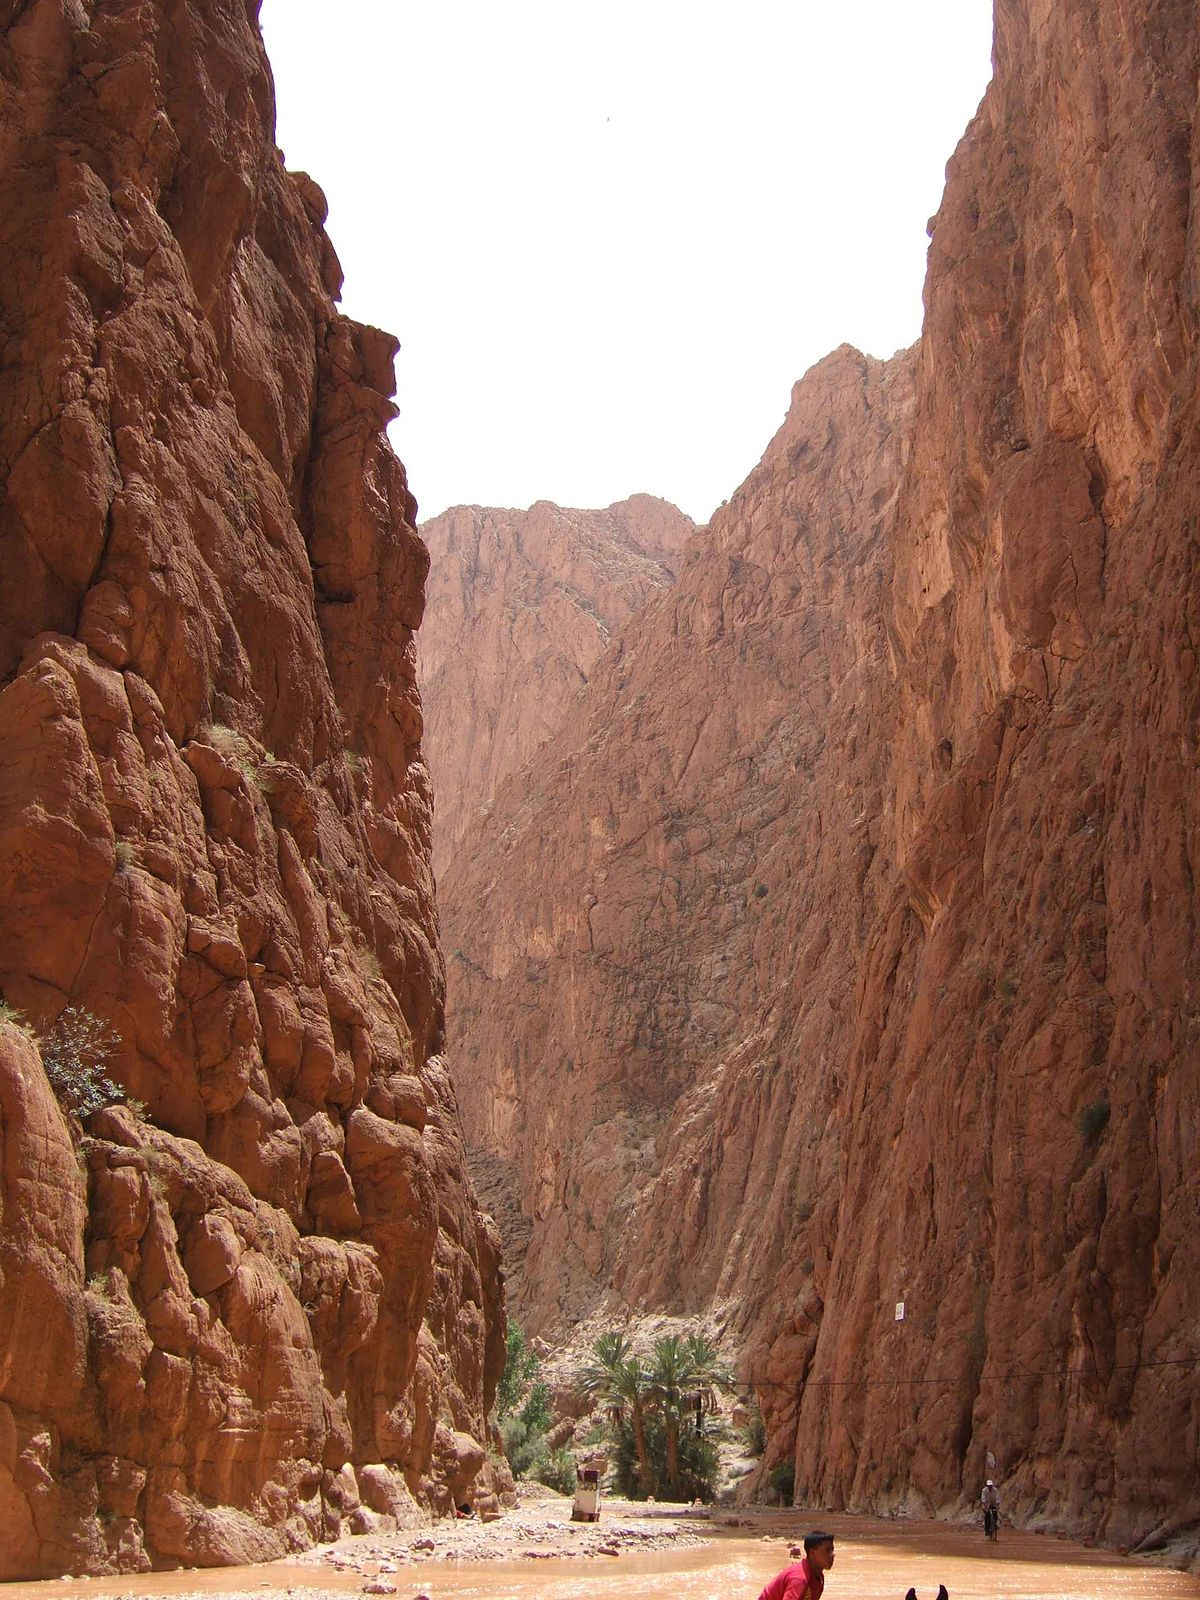 todghakloof wikipedia. Black Bedroom Furniture Sets. Home Design Ideas